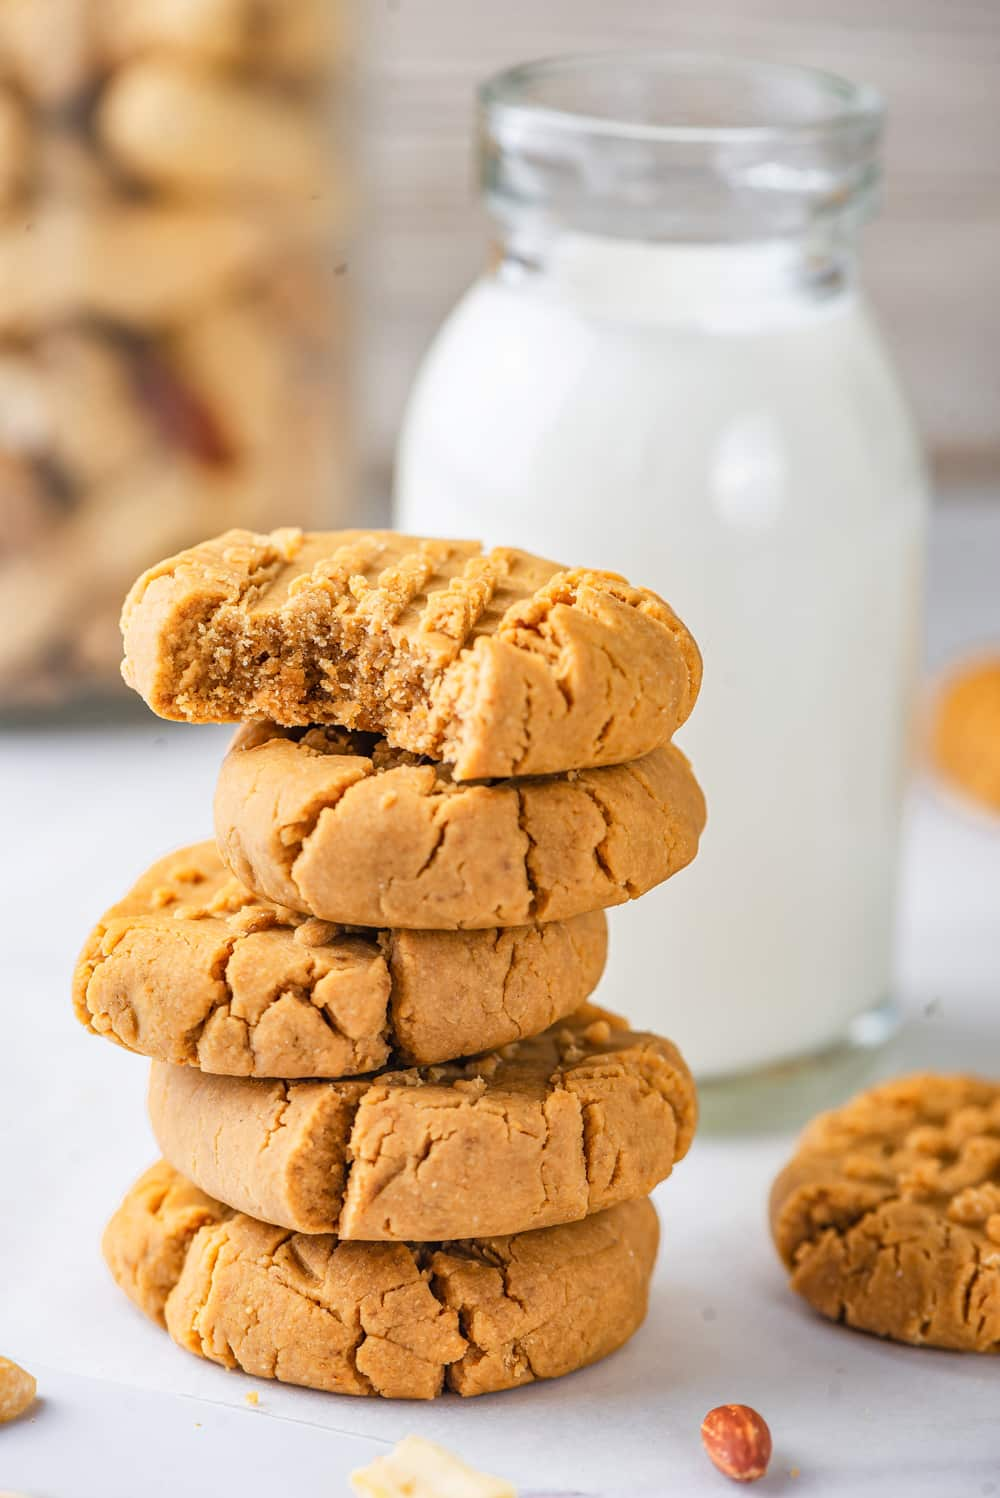 A stack of five vegan peanut butter cookies. There is a bite out of the top cookie with the inside of the cookie showing. A tall glass jar of milk is right behind the stack of cookies and there is one cookie to the right of the stack. The cookies and milk are set on a white counter.